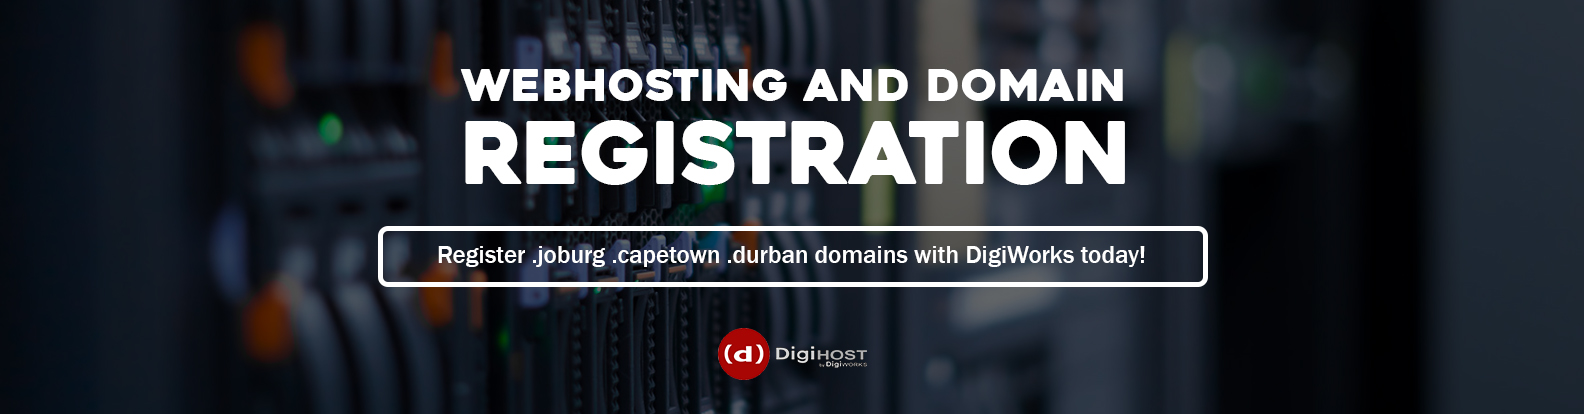 web design and development services available through Digiworks.co.za